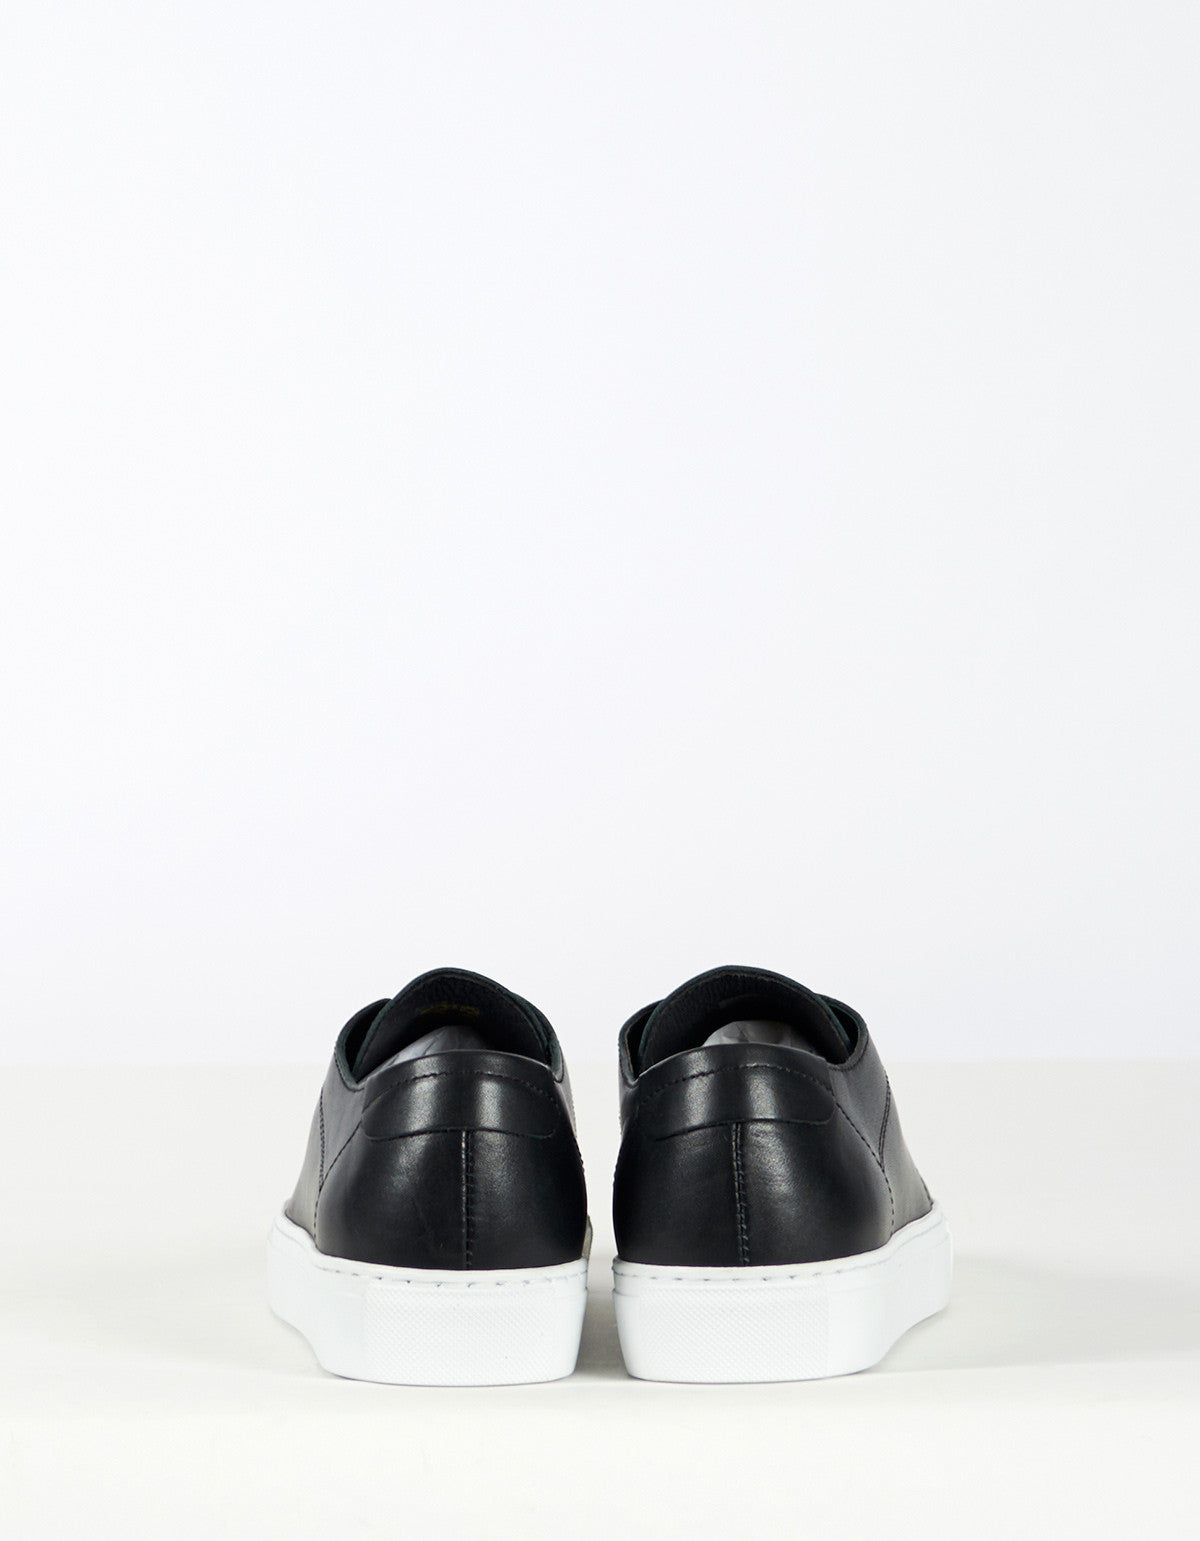 Garment Project Classic Lace Sneaker Black - Still Life - 5